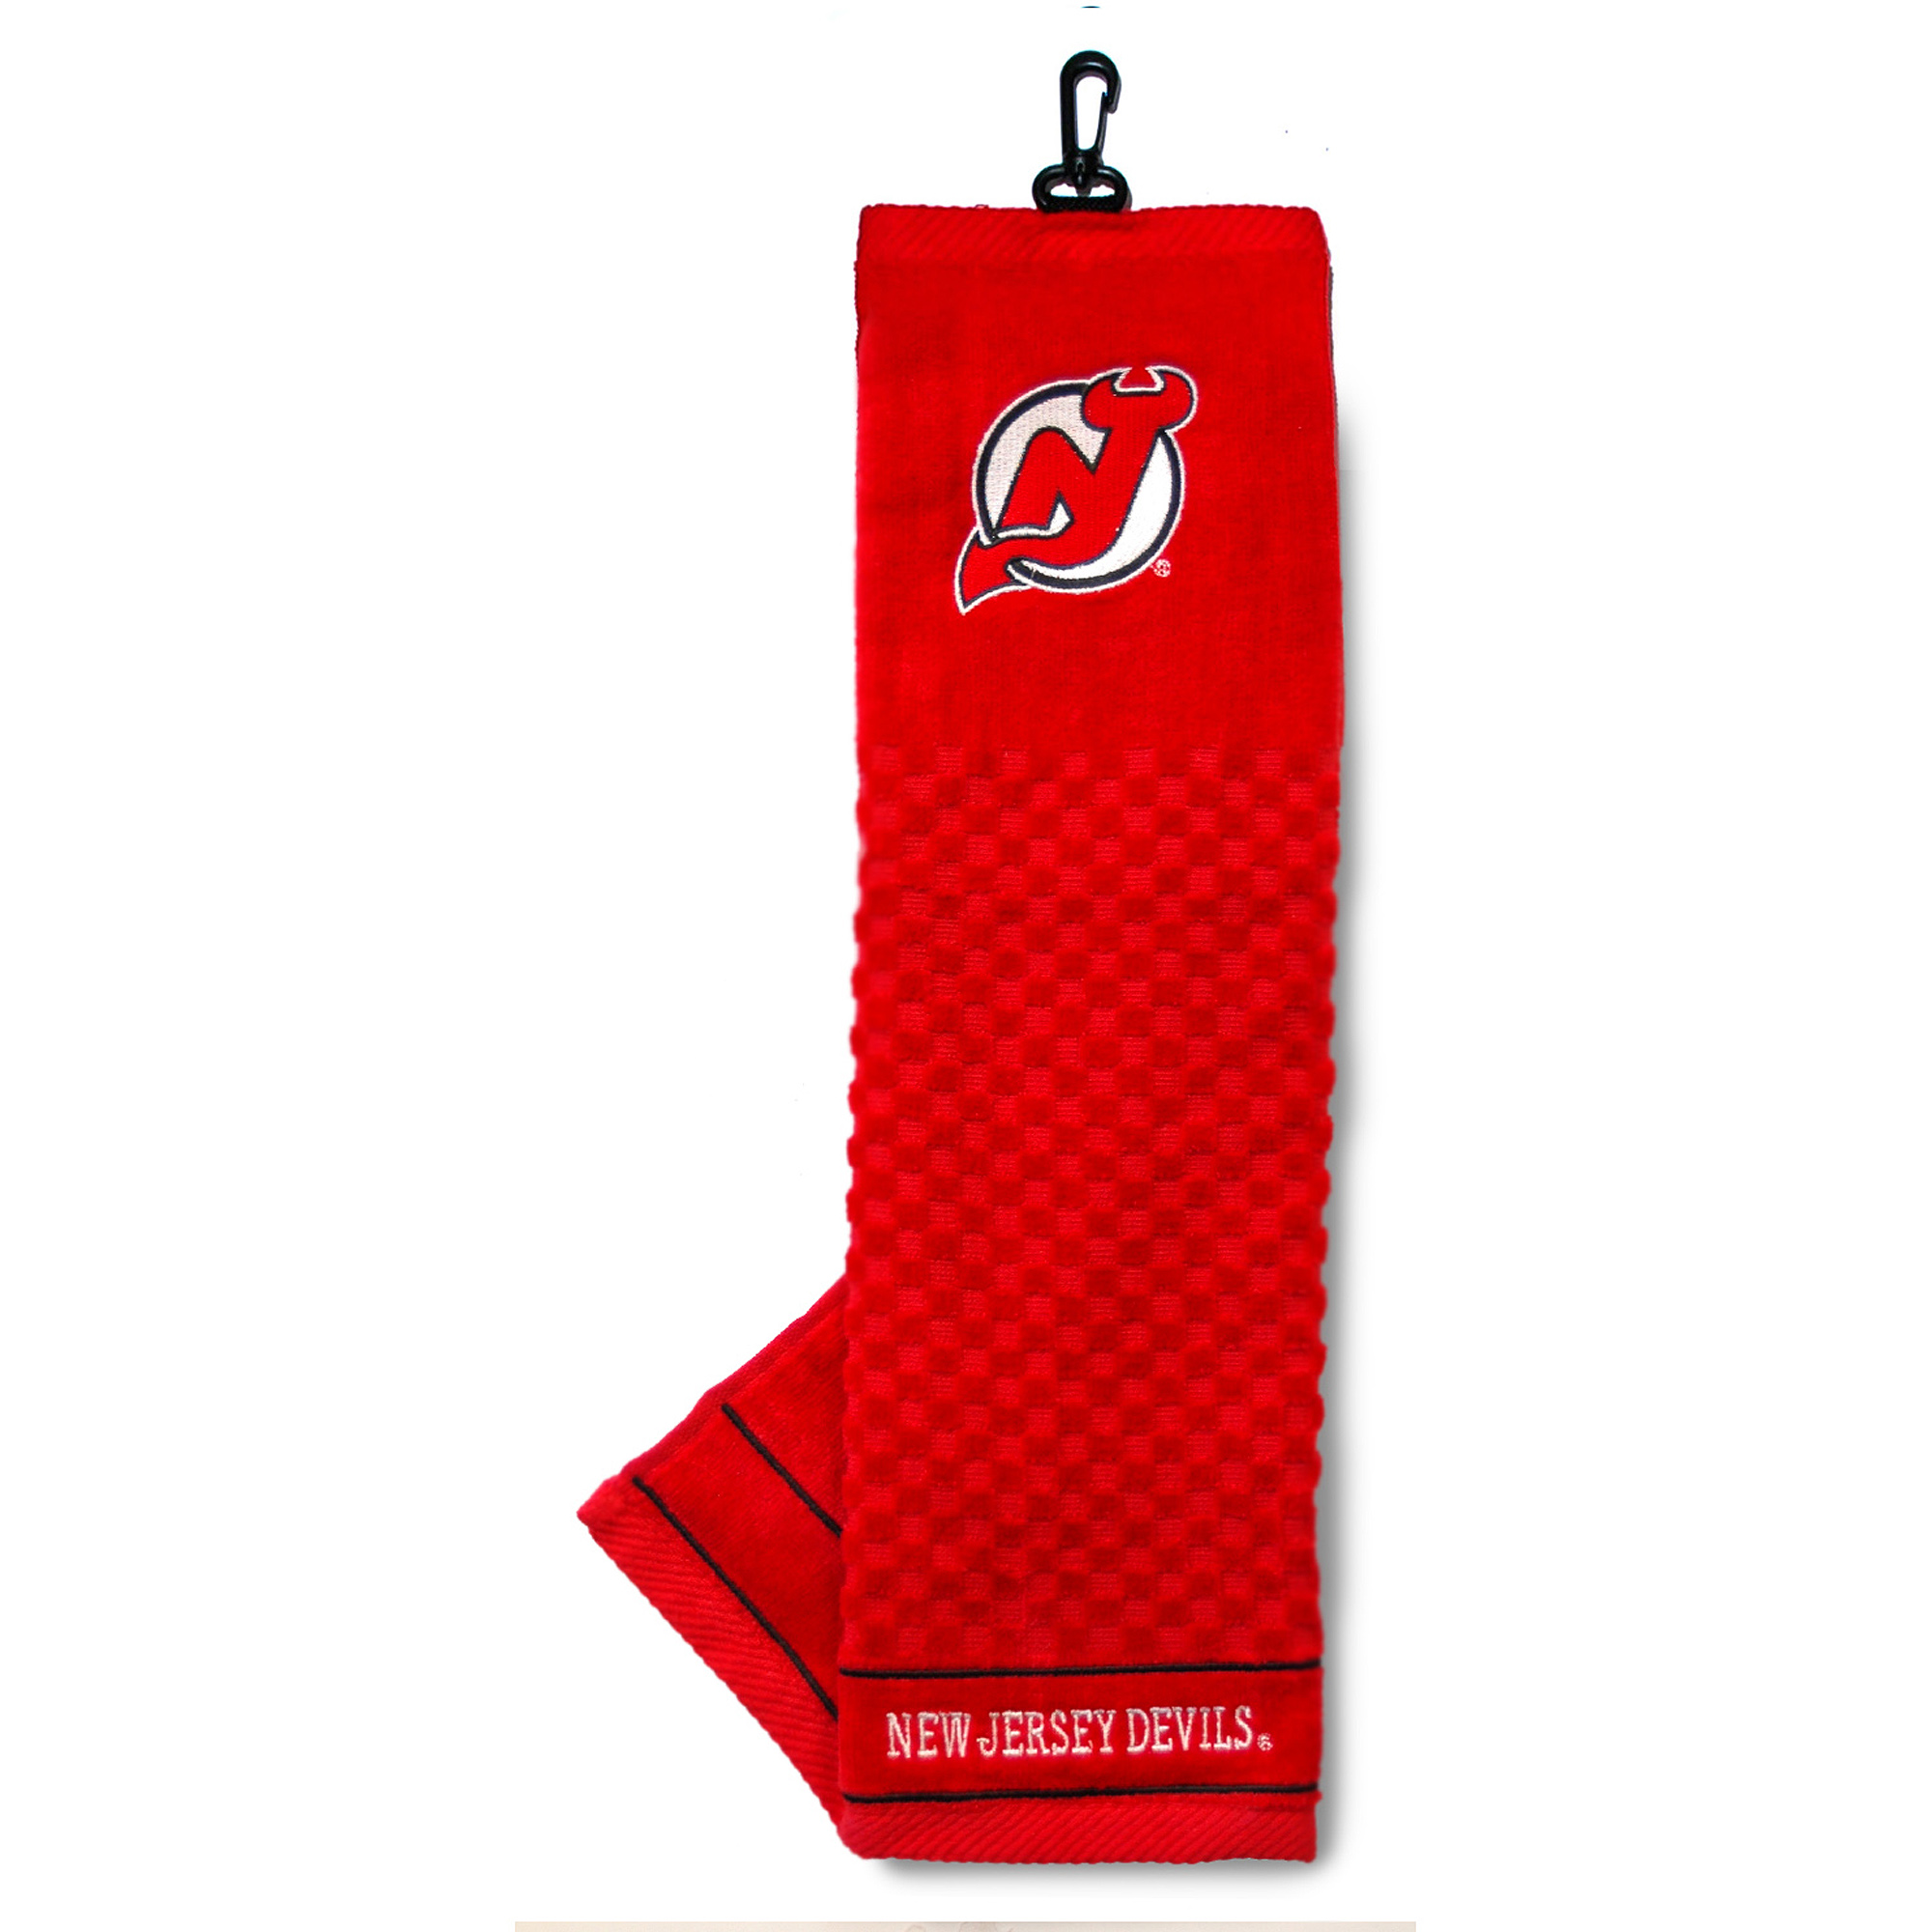 New Jersey Devils Embroidered Towel